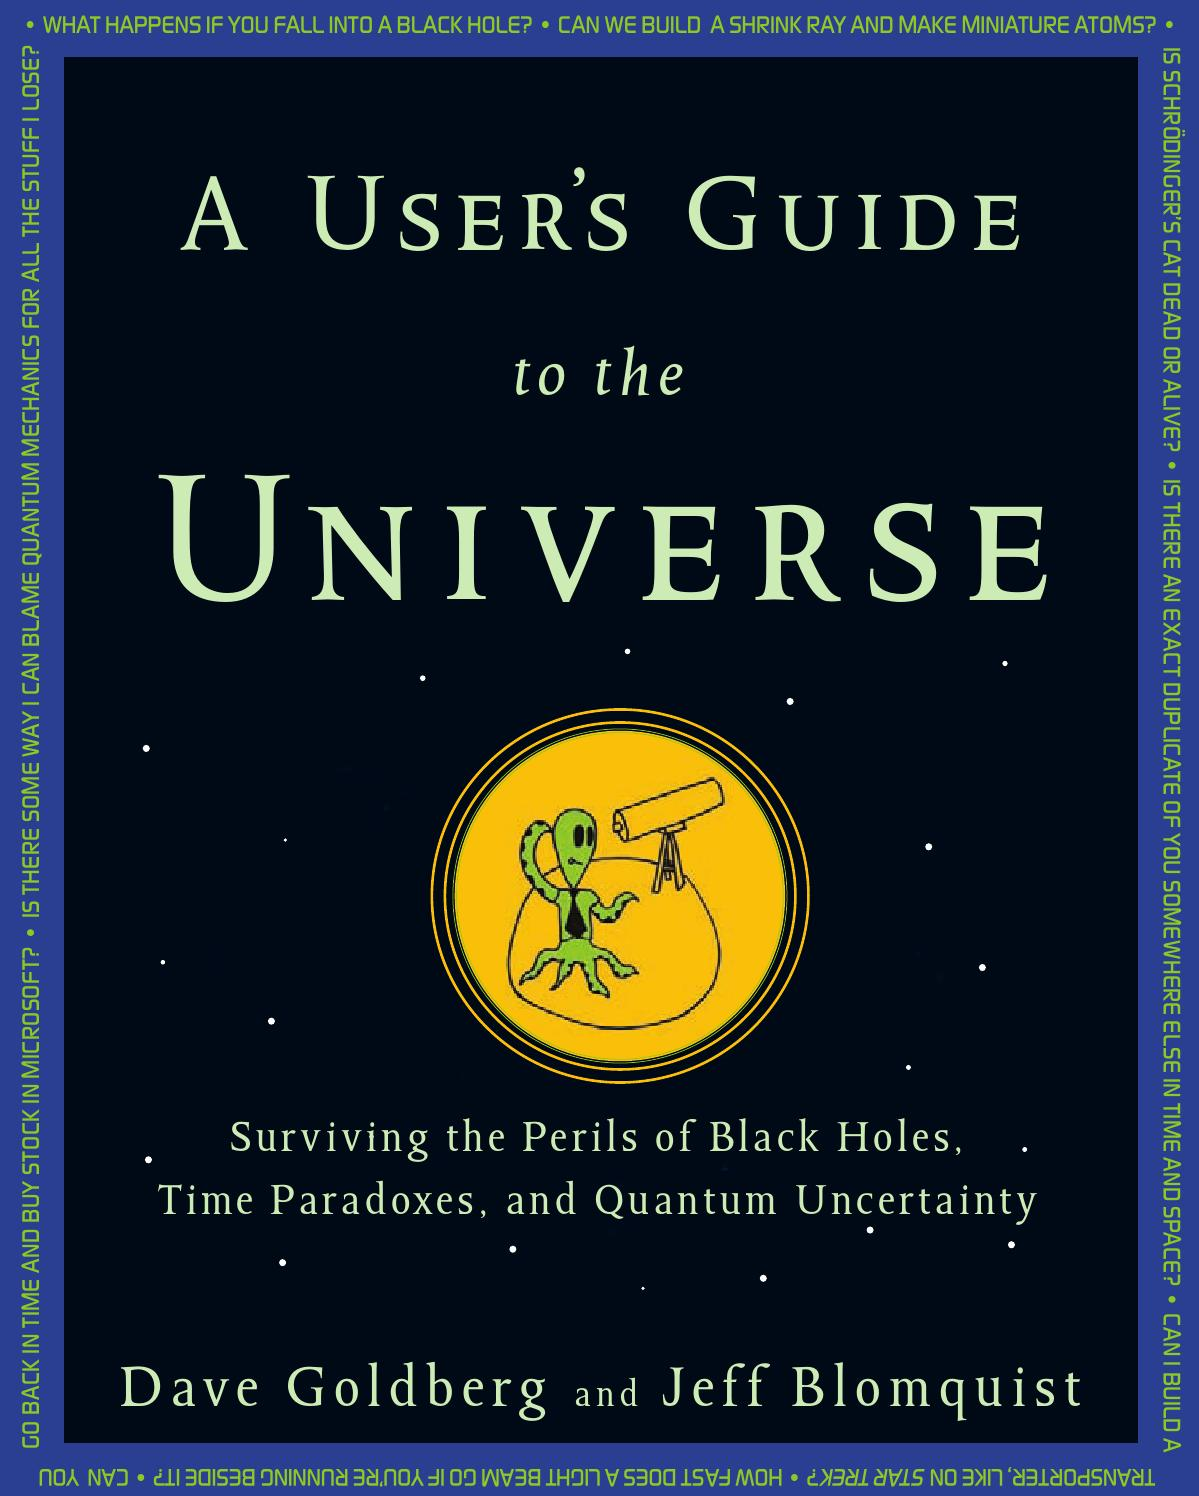 A User's Guide To The Universe - Dave Goldberg & Jeff Blomquist by Din Nou - issuu